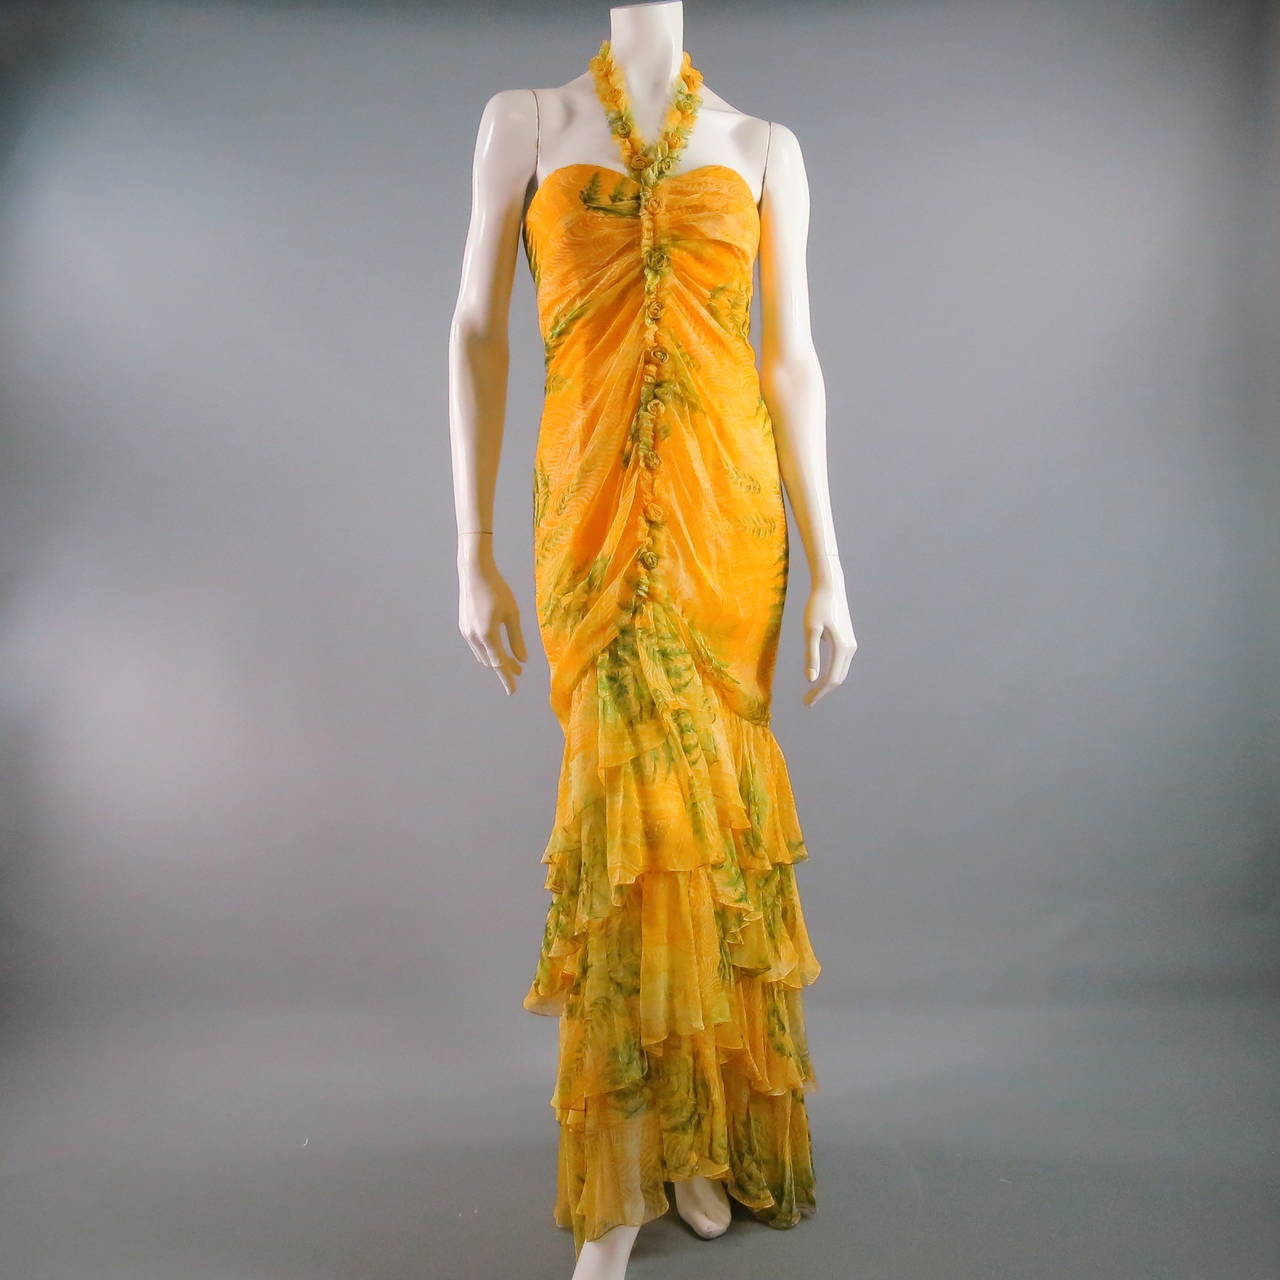 OSCAR DE LA RENTA Dress 8 Yellow Silk Straples Ruffled  Gown/Day/Evening Wear 7